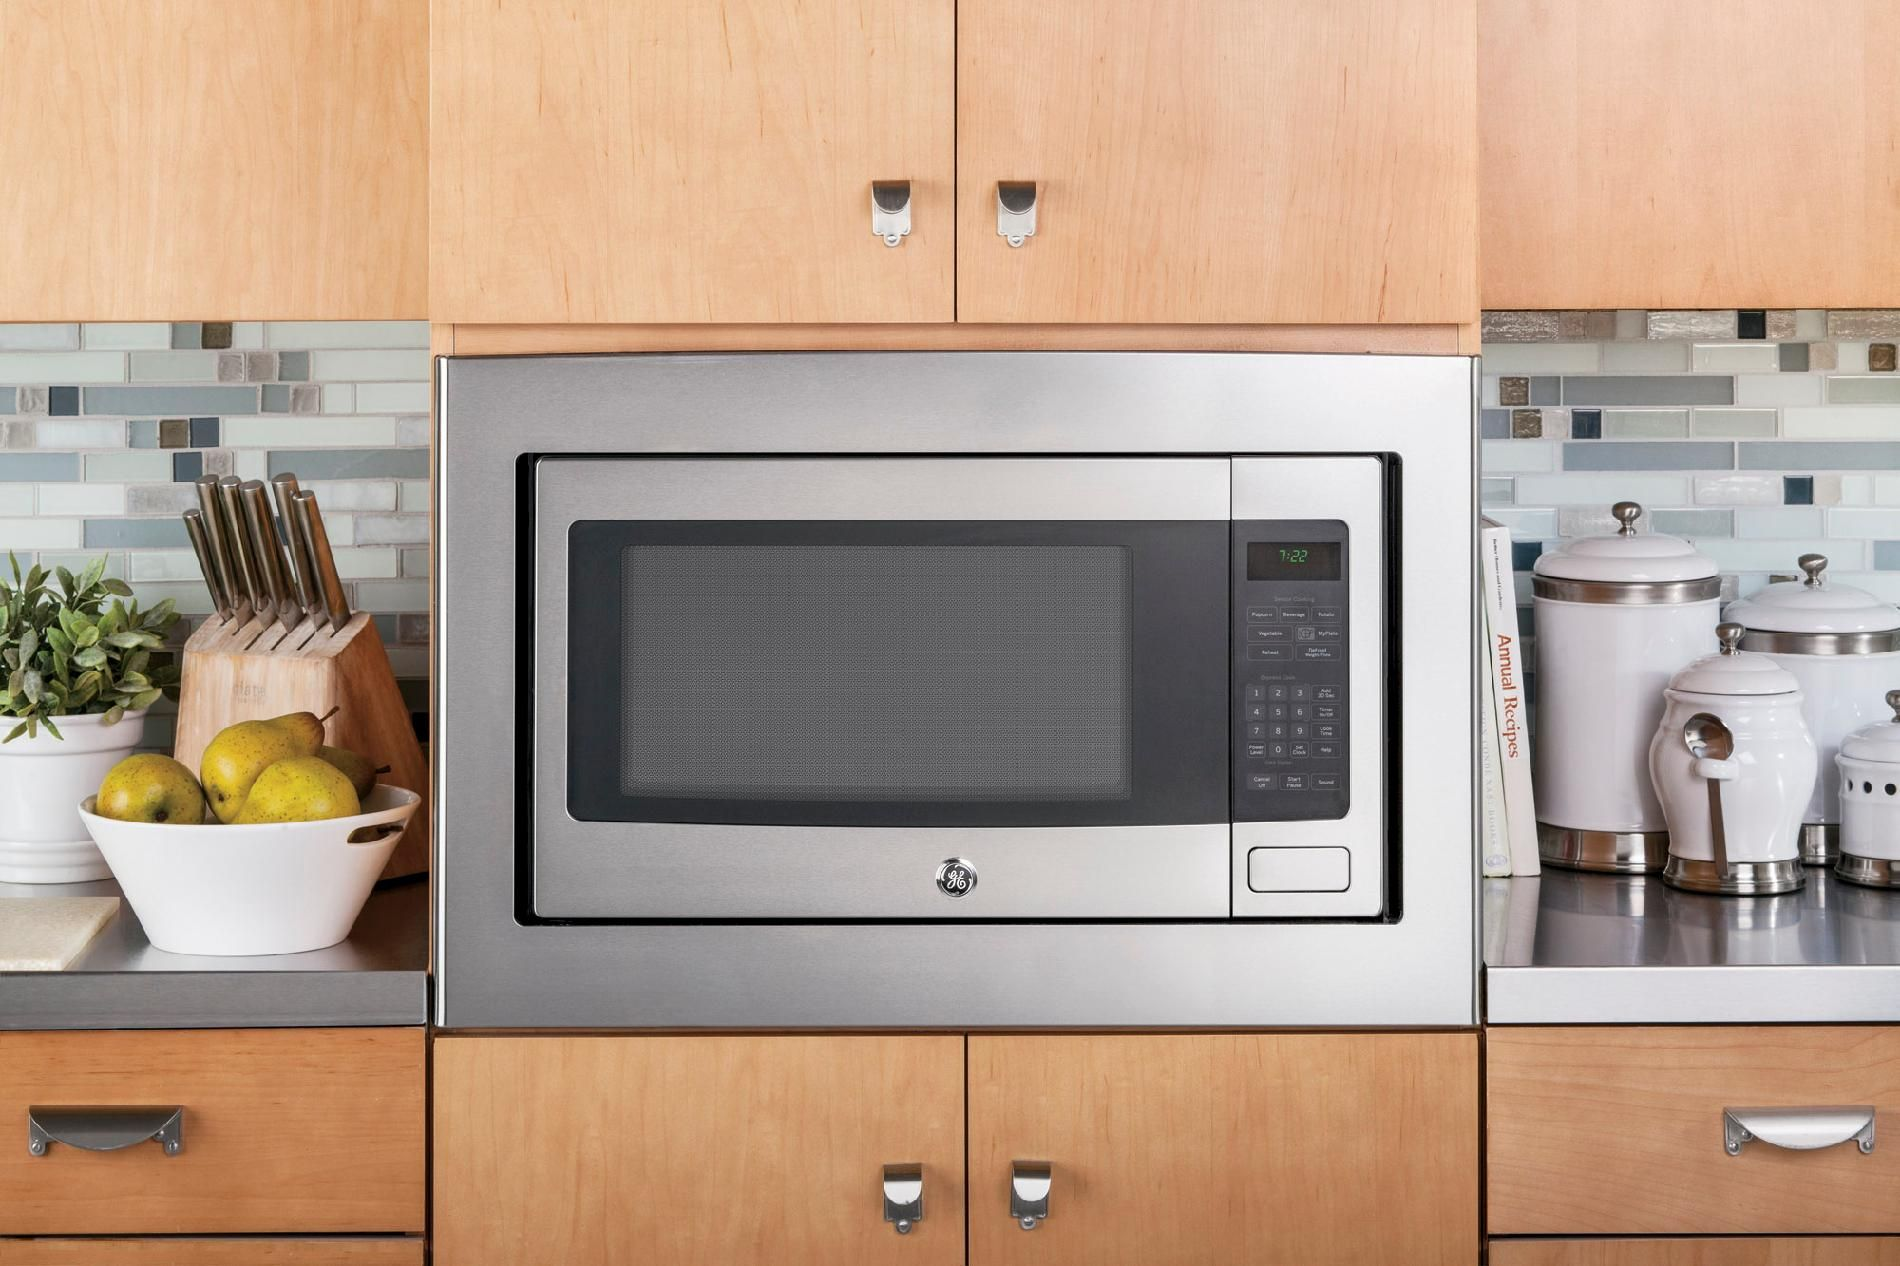 Pin By Karen Coning On 115b Built In Microwave Built In